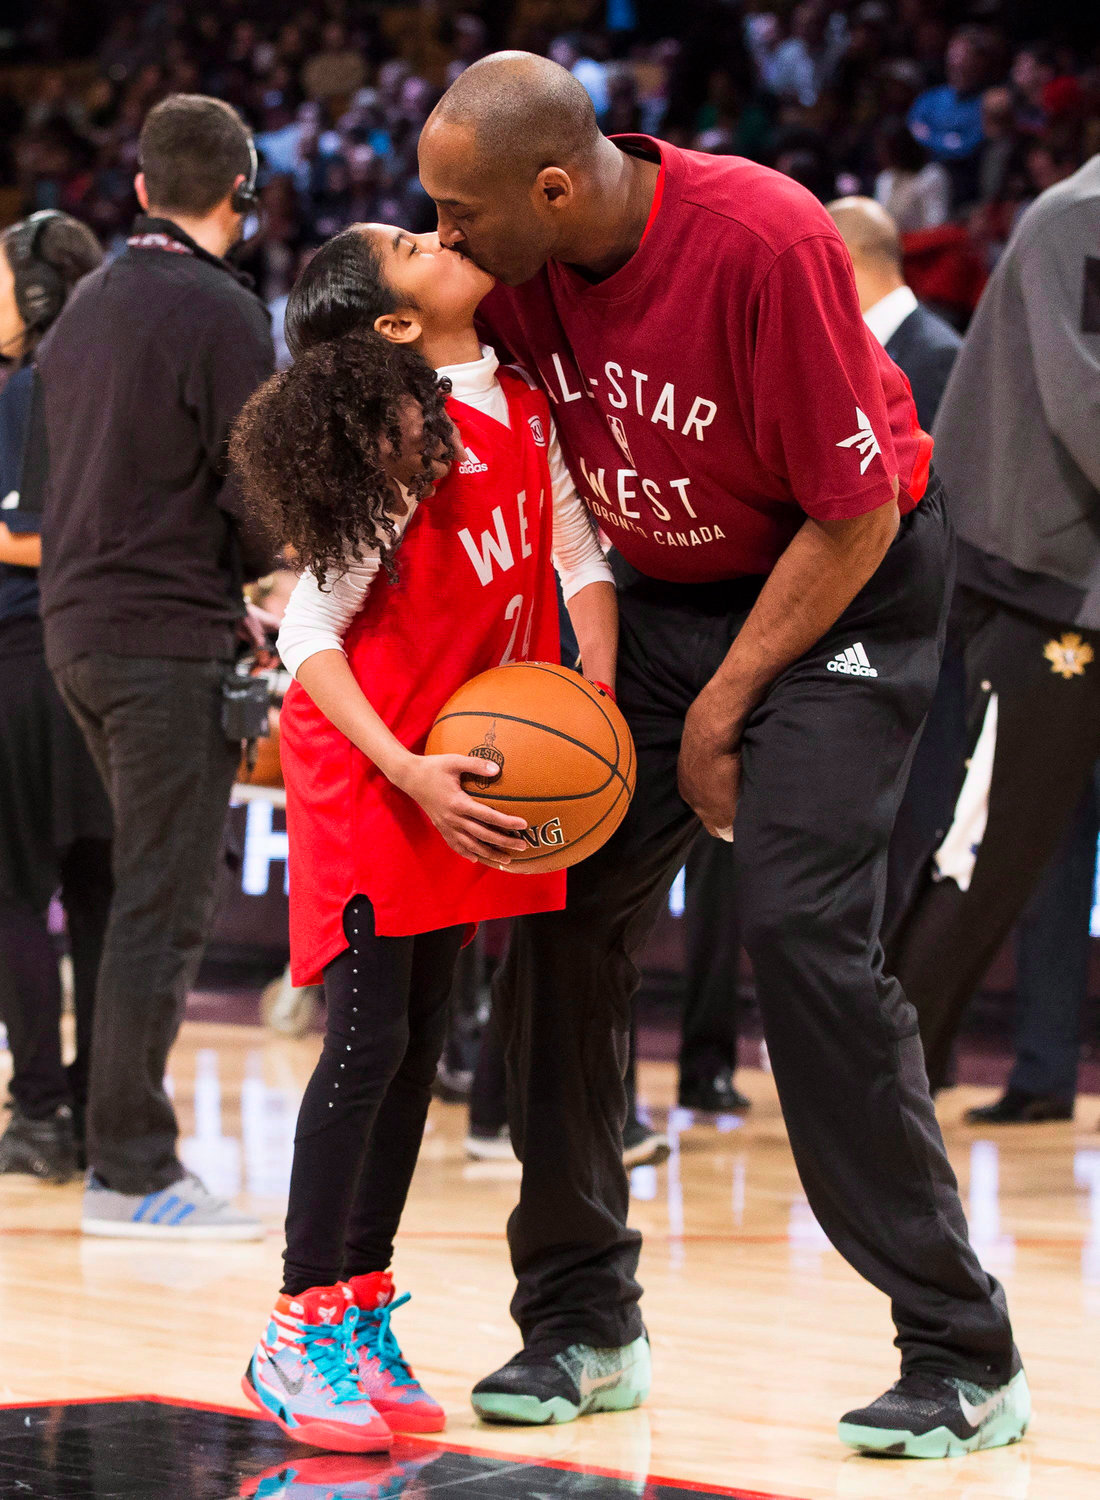 FATHER AND DAUGHTER — In this Feb. 14, 2016, file photo, Los Angeles Lakers Kobe Bryant (24) kisses his daughter Gianna on the court in warm-ups before the NBA All-Star Game in Toronto. Bryant and fellow NBA greats Tim Duncan and Kevin Garnett headlined a nine-person group announced Saturday as this year's class of enshrinees into the Naismith Memorial Basketball Hall of Fame.